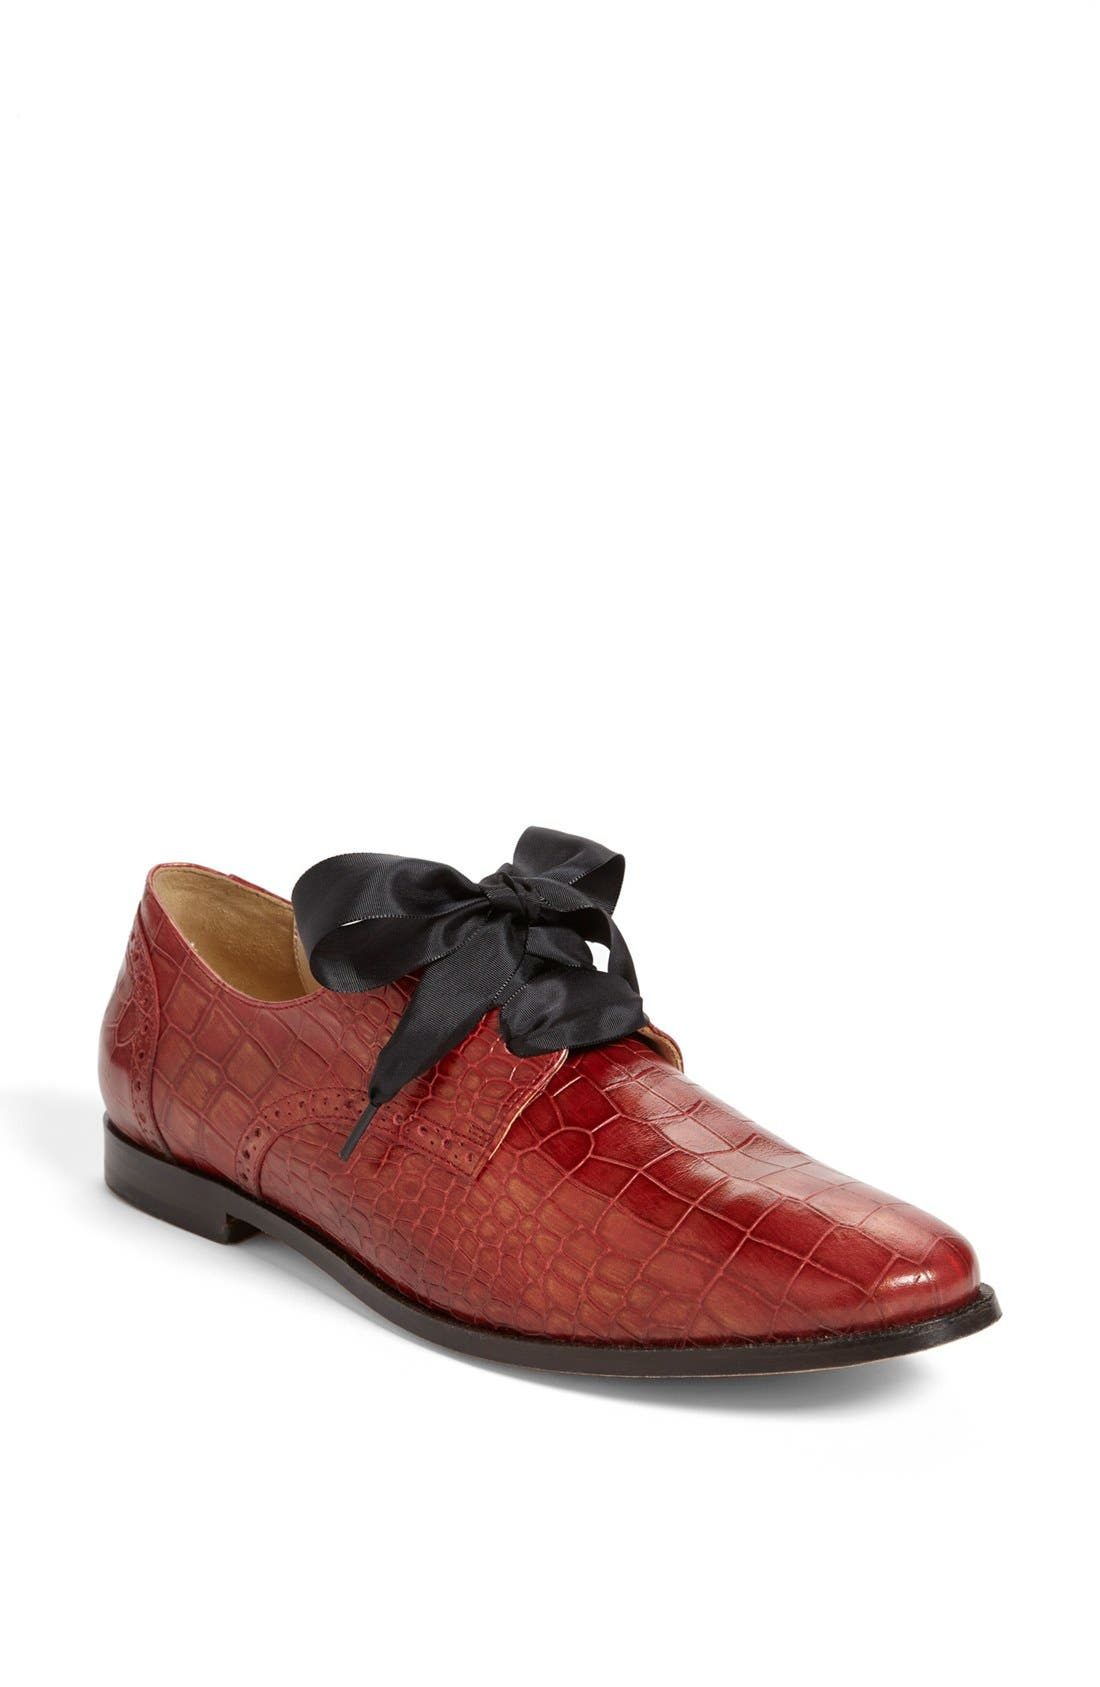 Alternate Image 1 Selected - Cole Haan 'Breslyn' Oxford